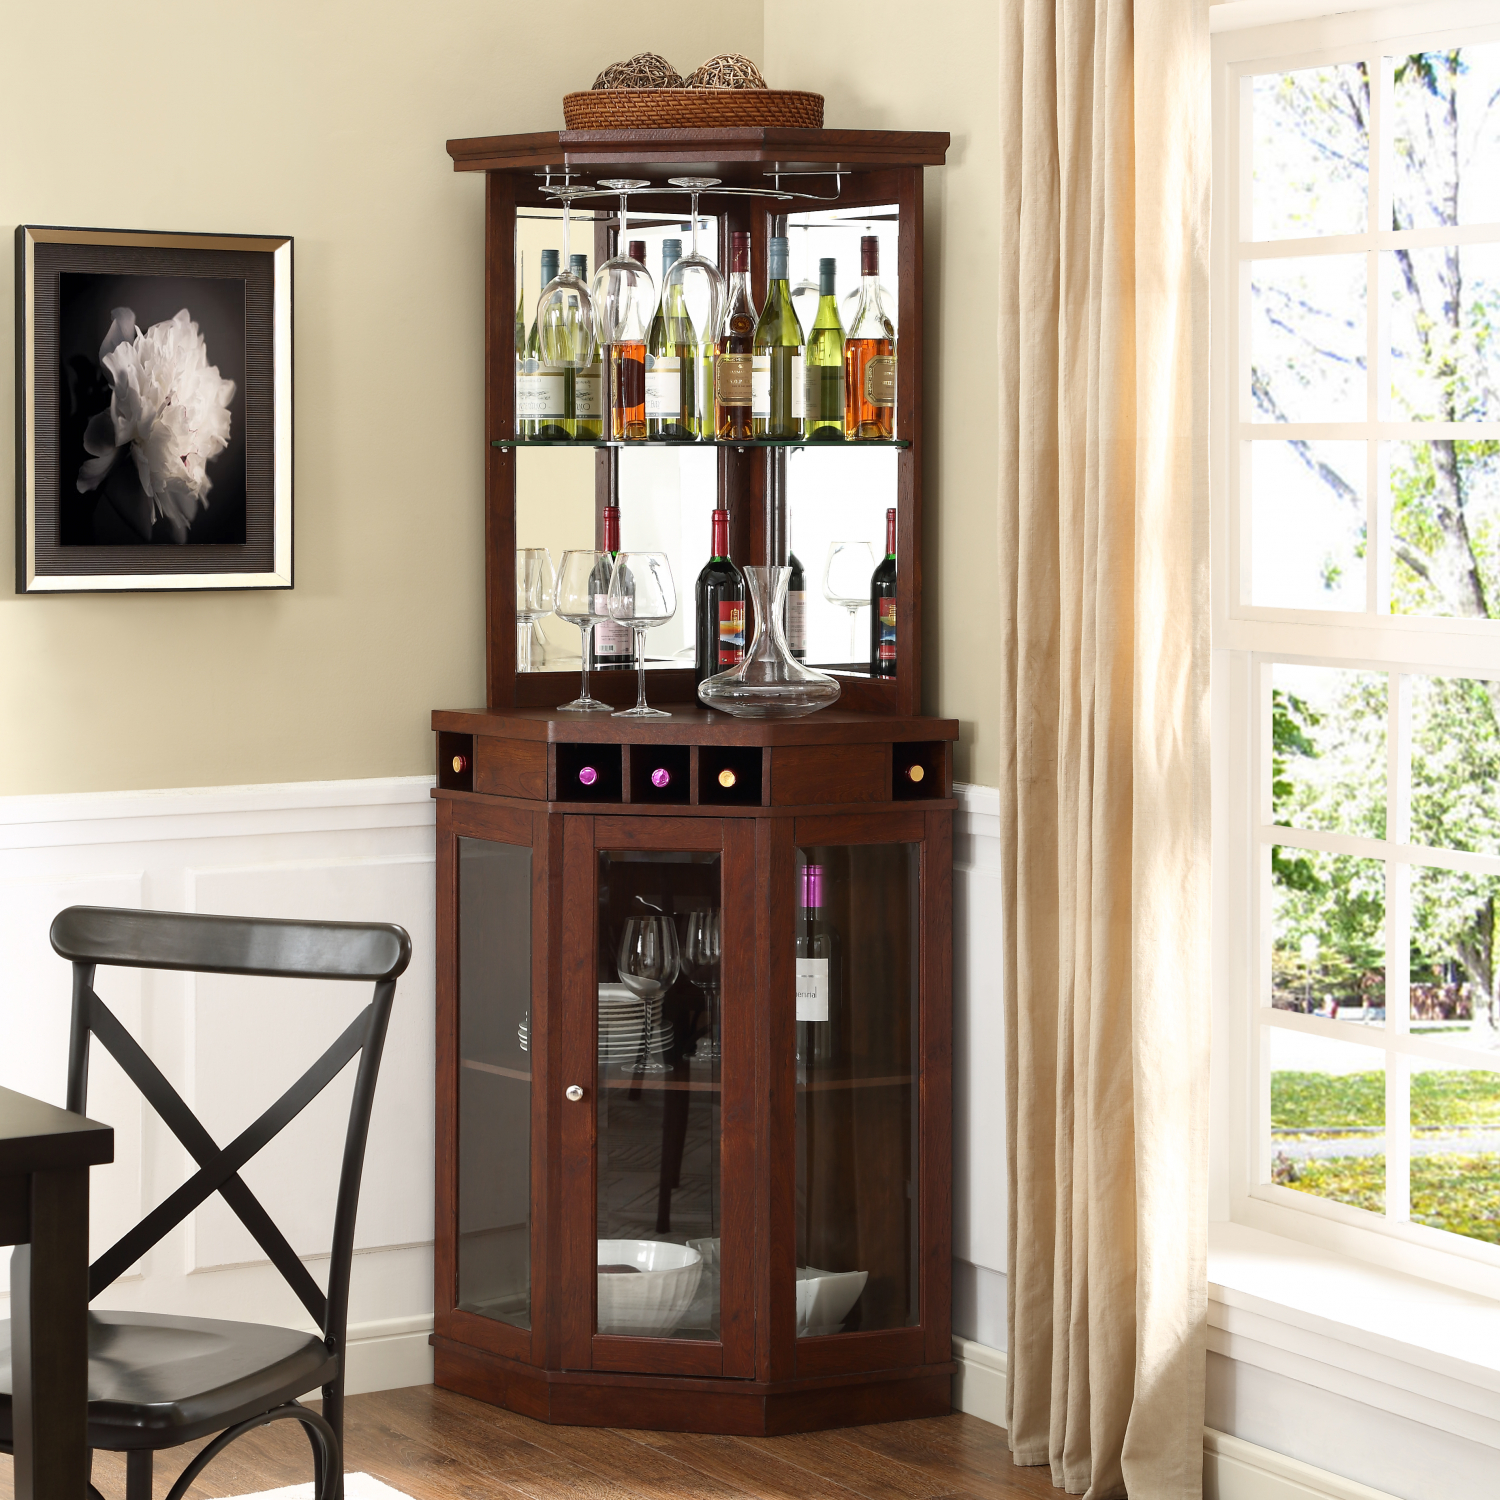 Details About Mini Bars Liquor Cabinet Whiskey Cabinets Wine Storage Wooden Home Bar Furniture regarding size 1500 X 1500